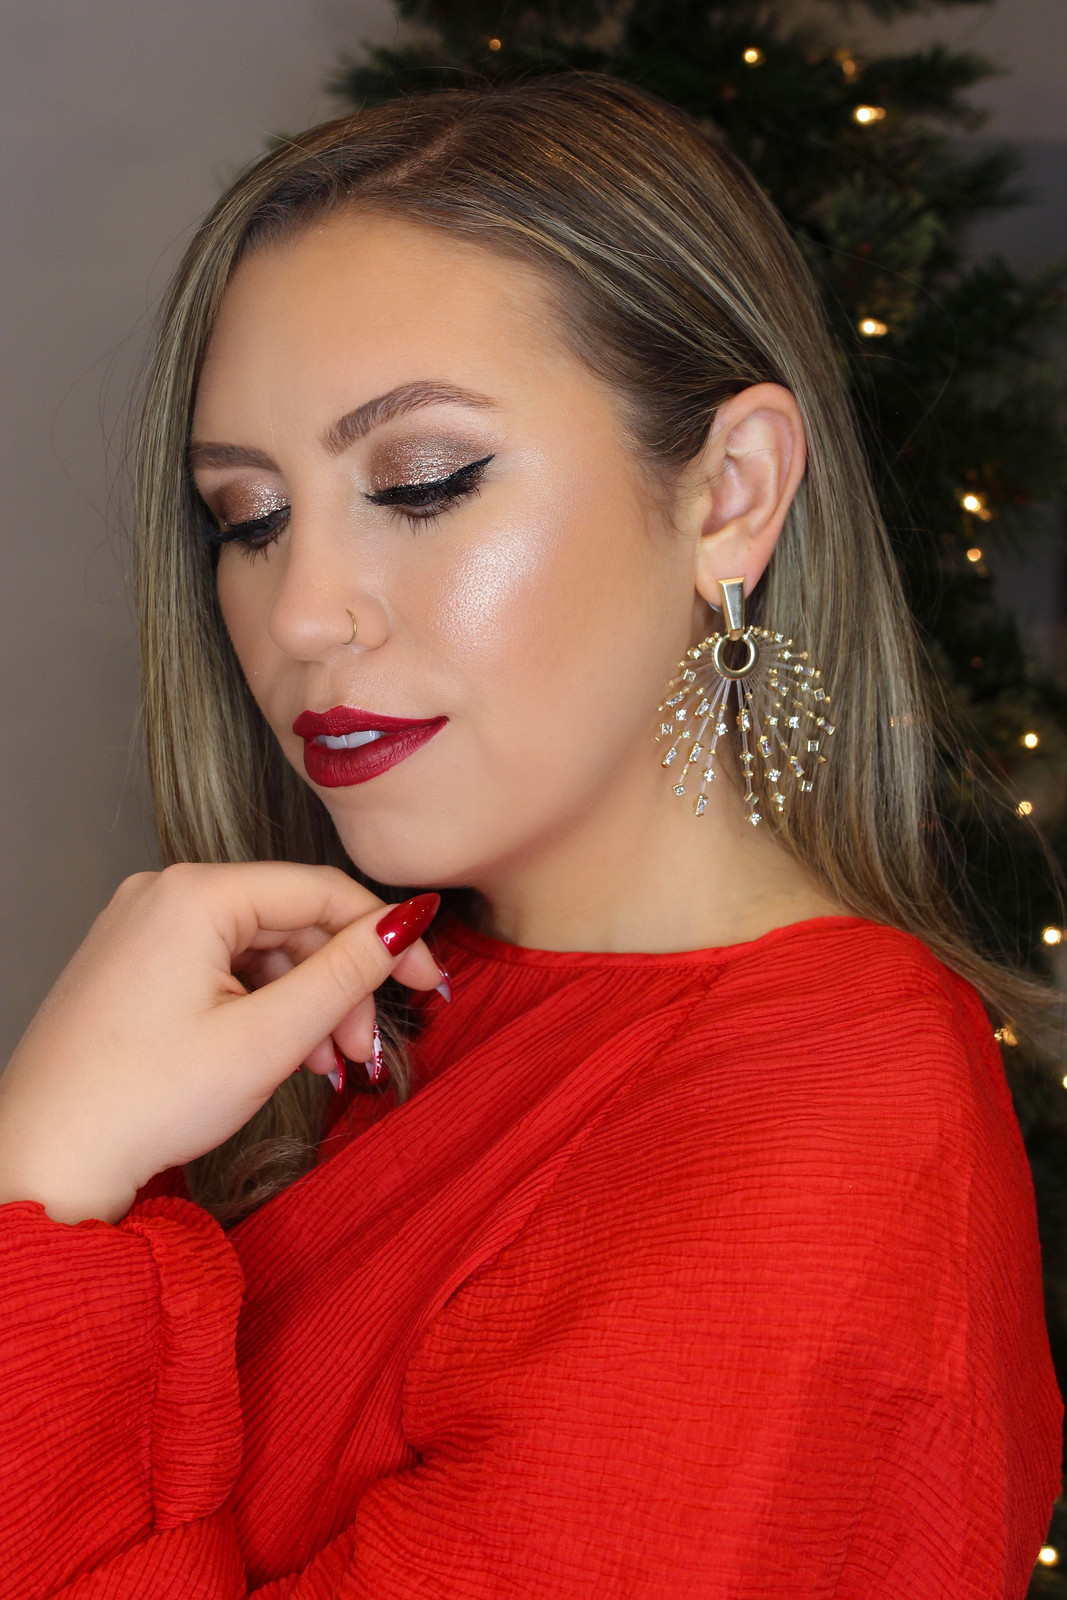 Holiday Makeup Monday Tutorial: Glimmer Eyes & Red Lips | Winged Eyeliner | Shimmer Glitter Eyeshadow | Deep Red Lipstick | Christmas Makeup Looks